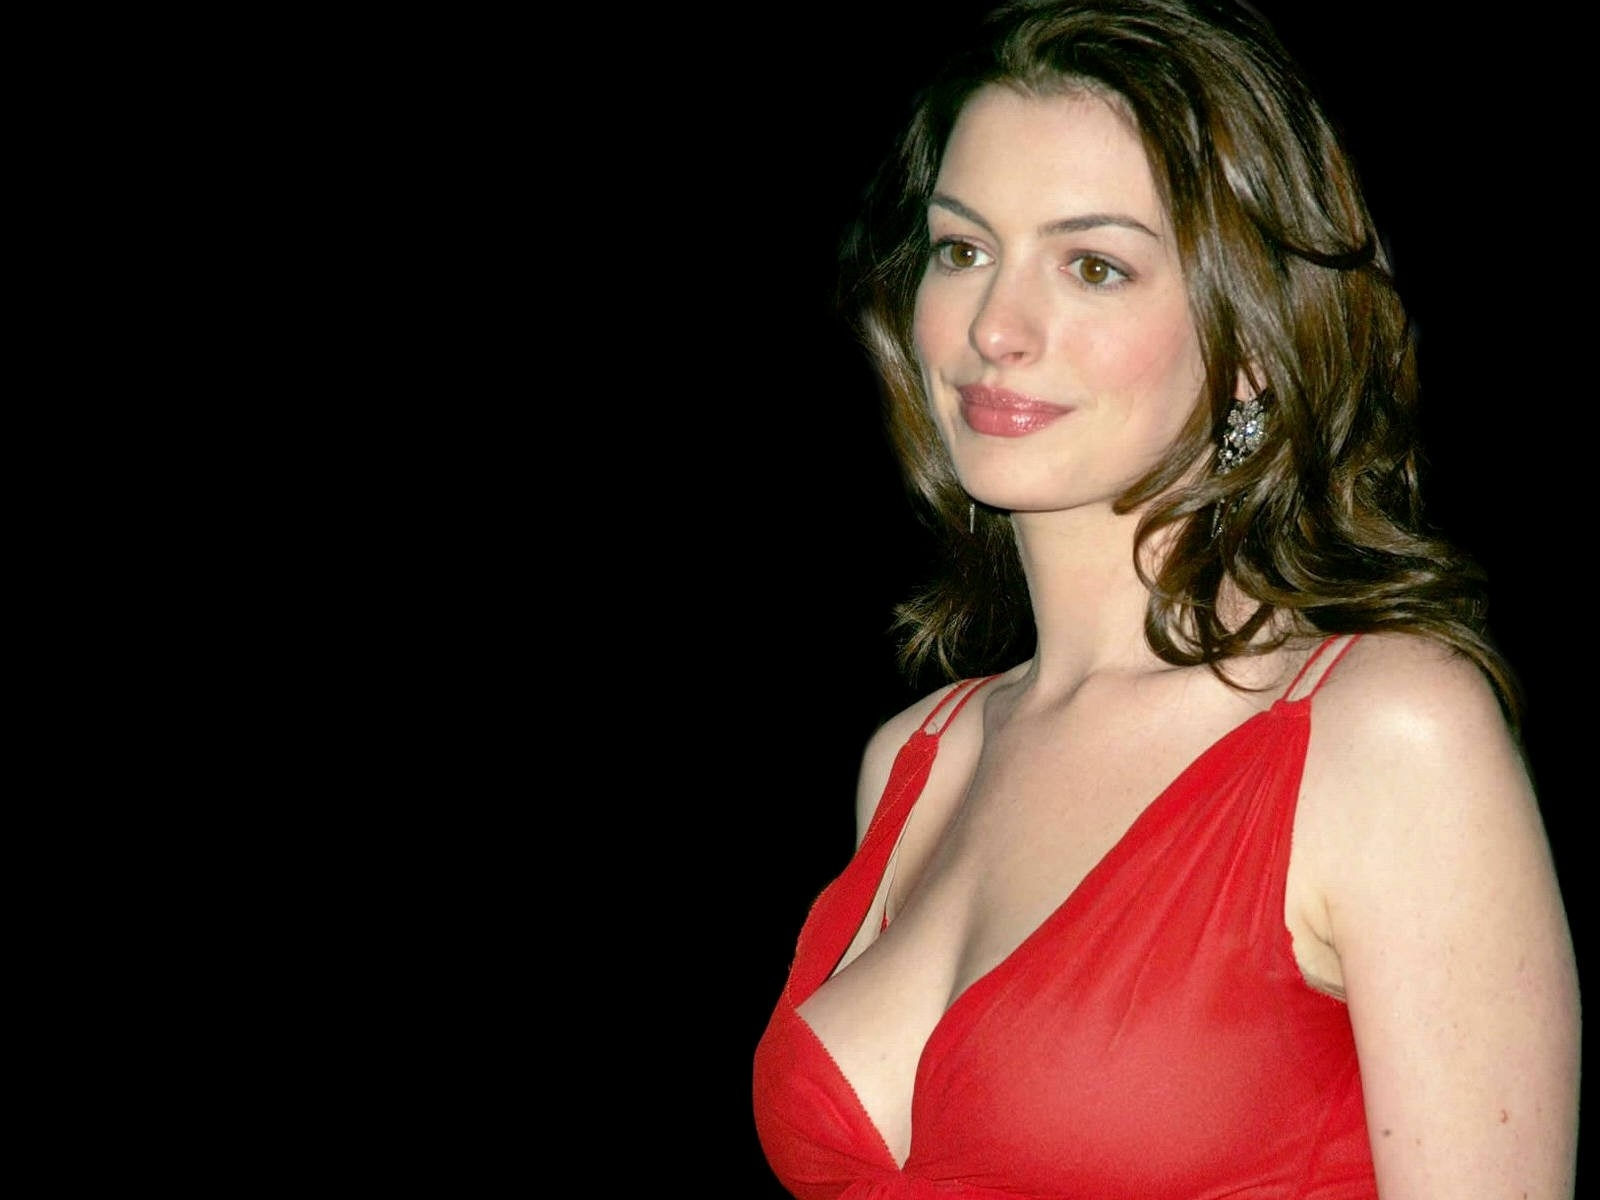 Wallpaper di Anne Hathaway - 6